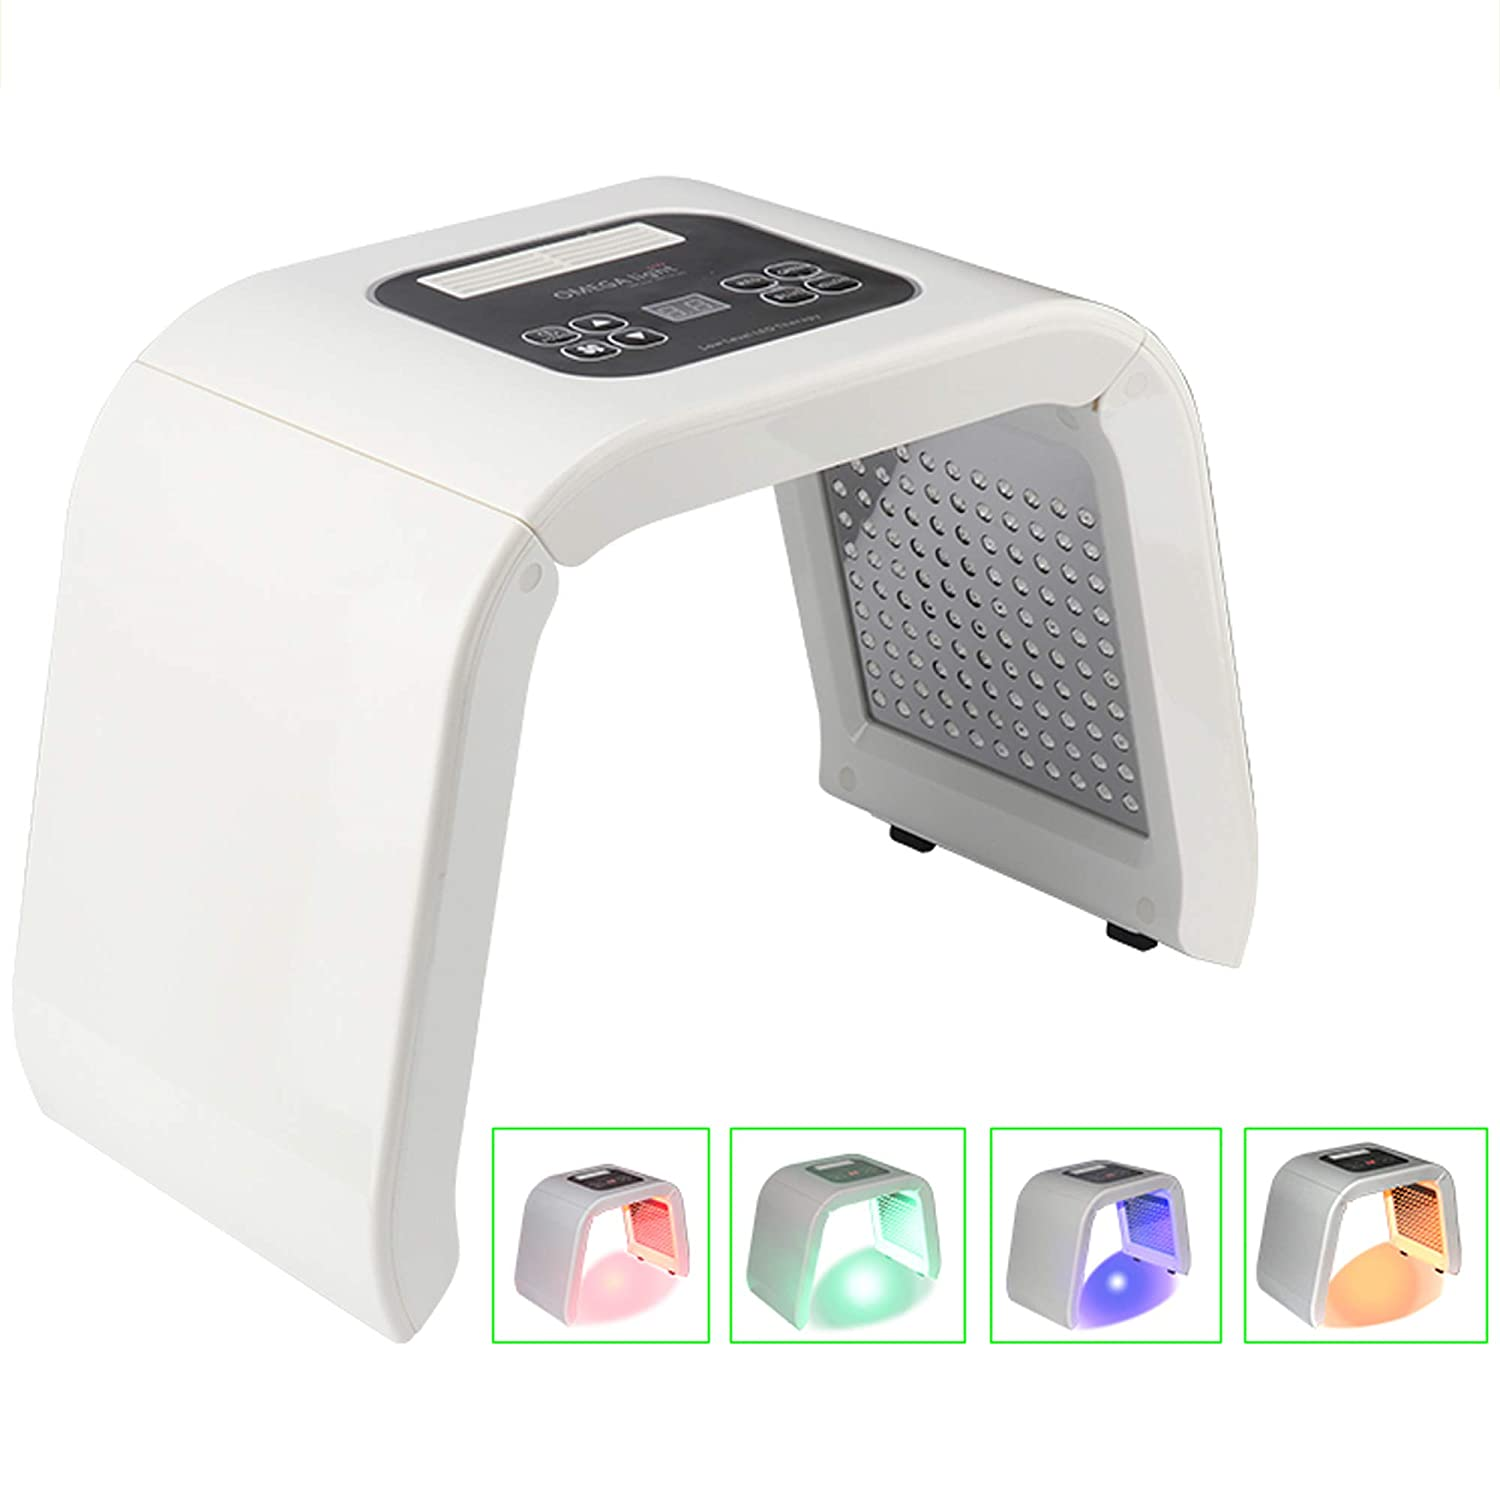 URYOUTH 7 Color LED Face Photon Mask Photon Light Skin Rejuvenation Therapy Facial Skin Care Machine